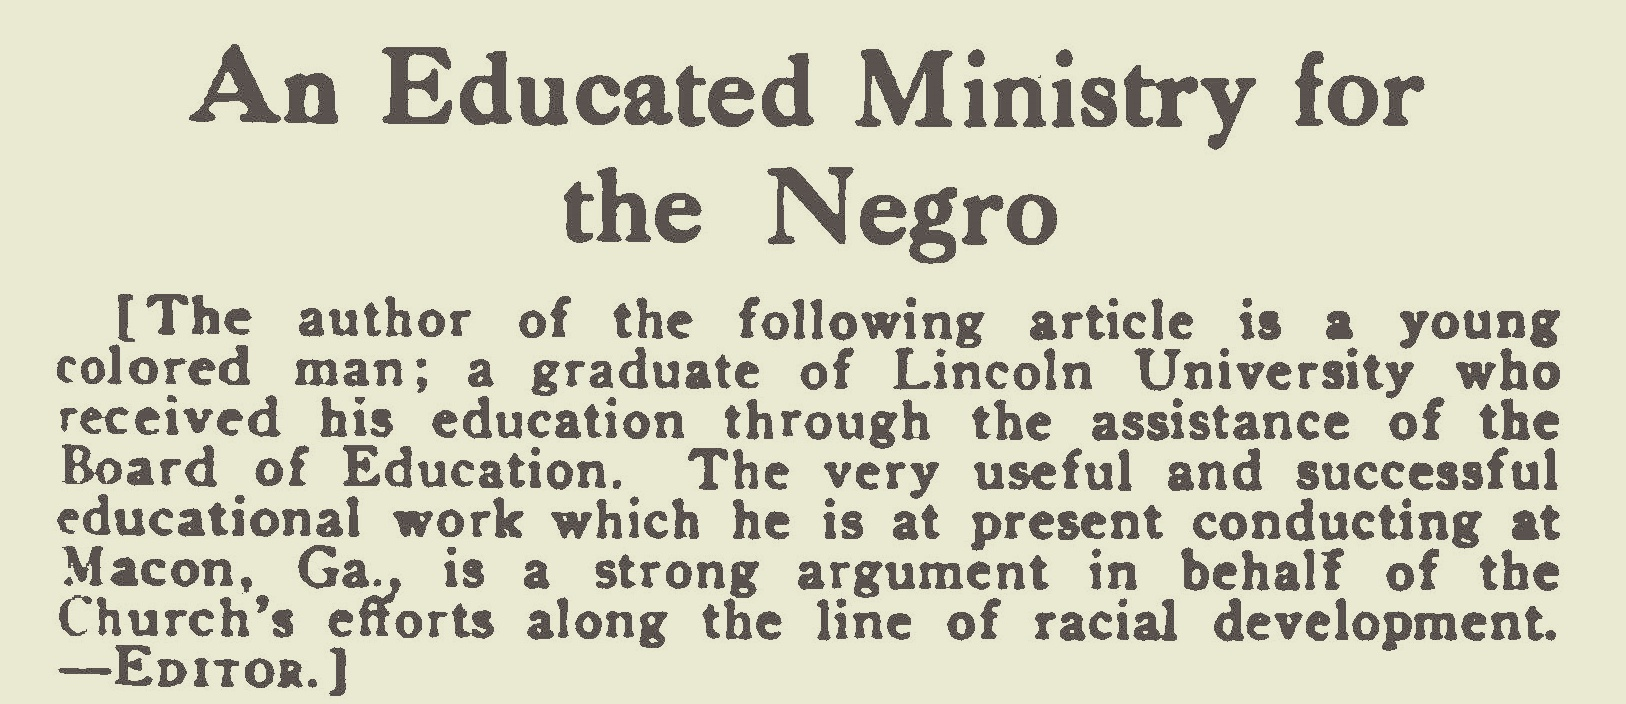 Holley, Joseph Winthrop, An Educated Ministry for the Negro Title Page.jpg